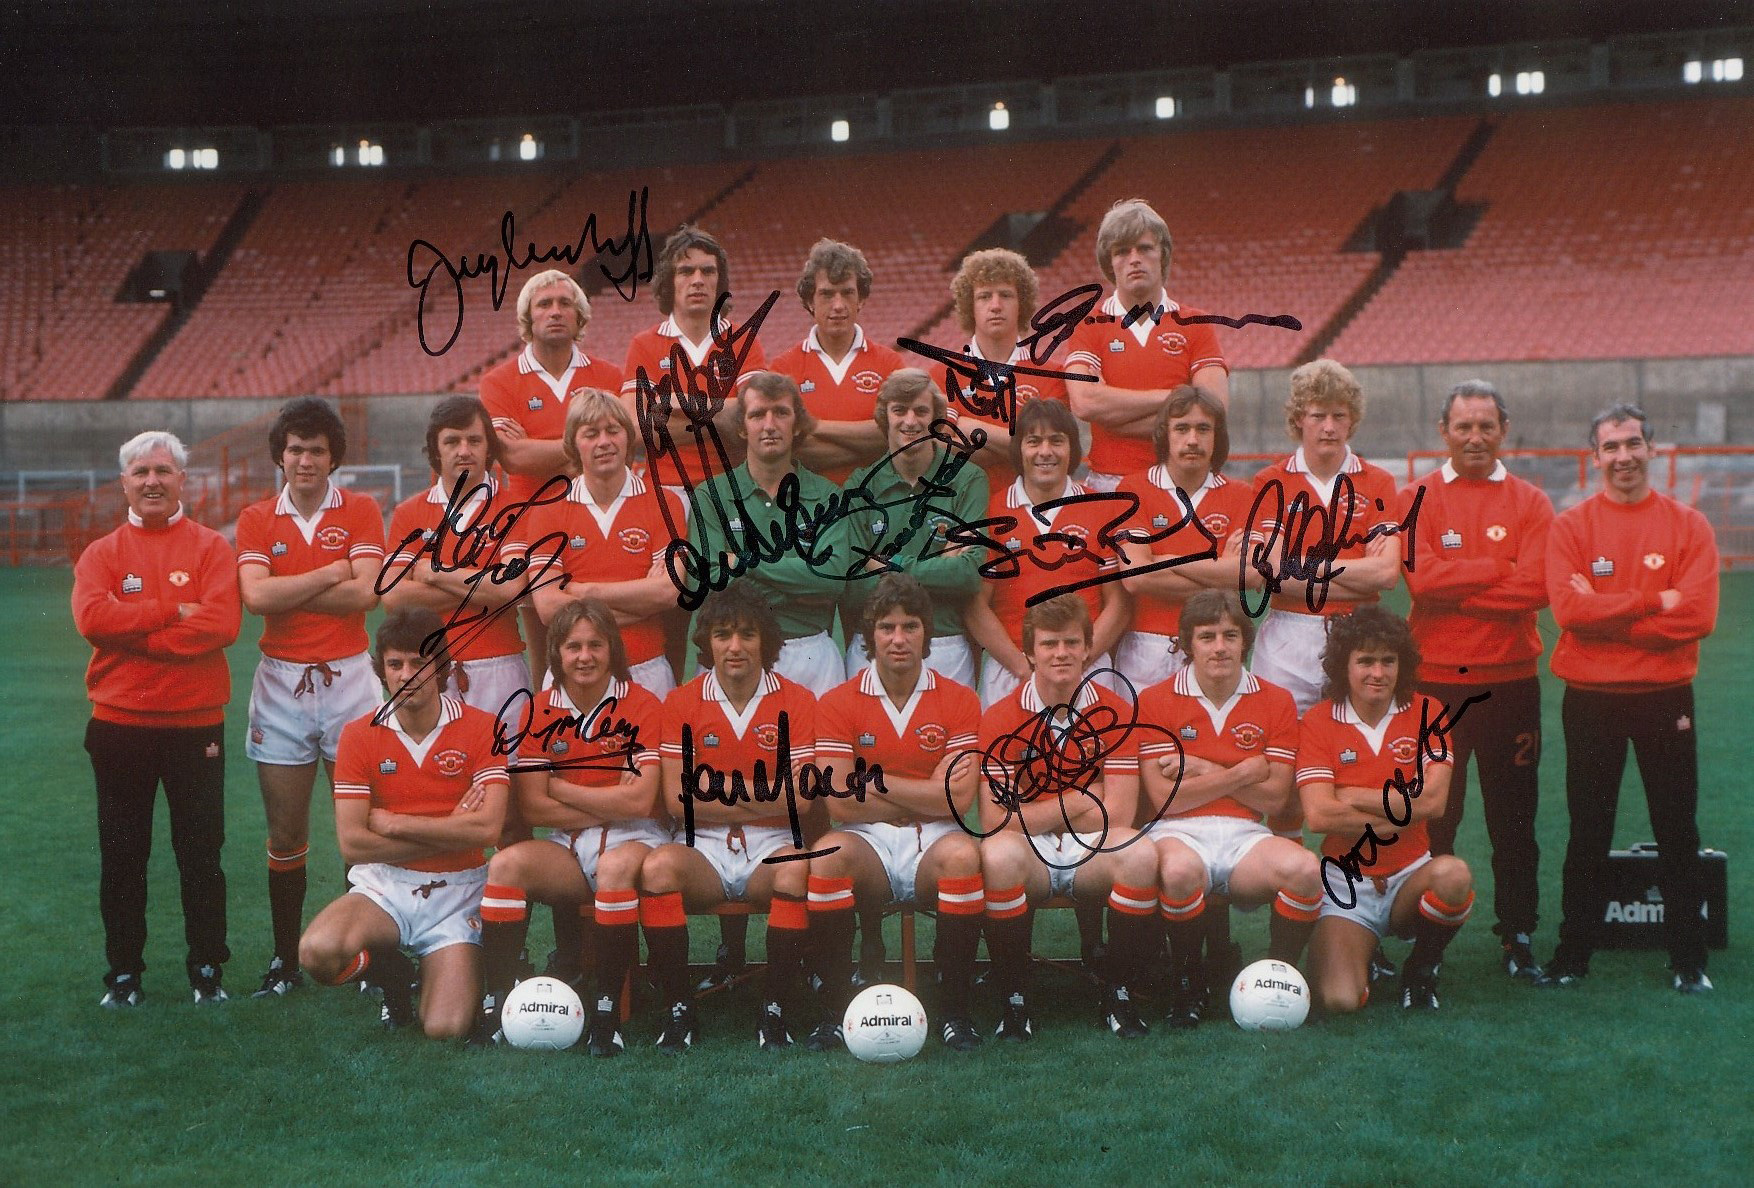 Autographed Man United 12 X 8 Photo Col, Depicting Players Posing For A Squad Photo During A Photo